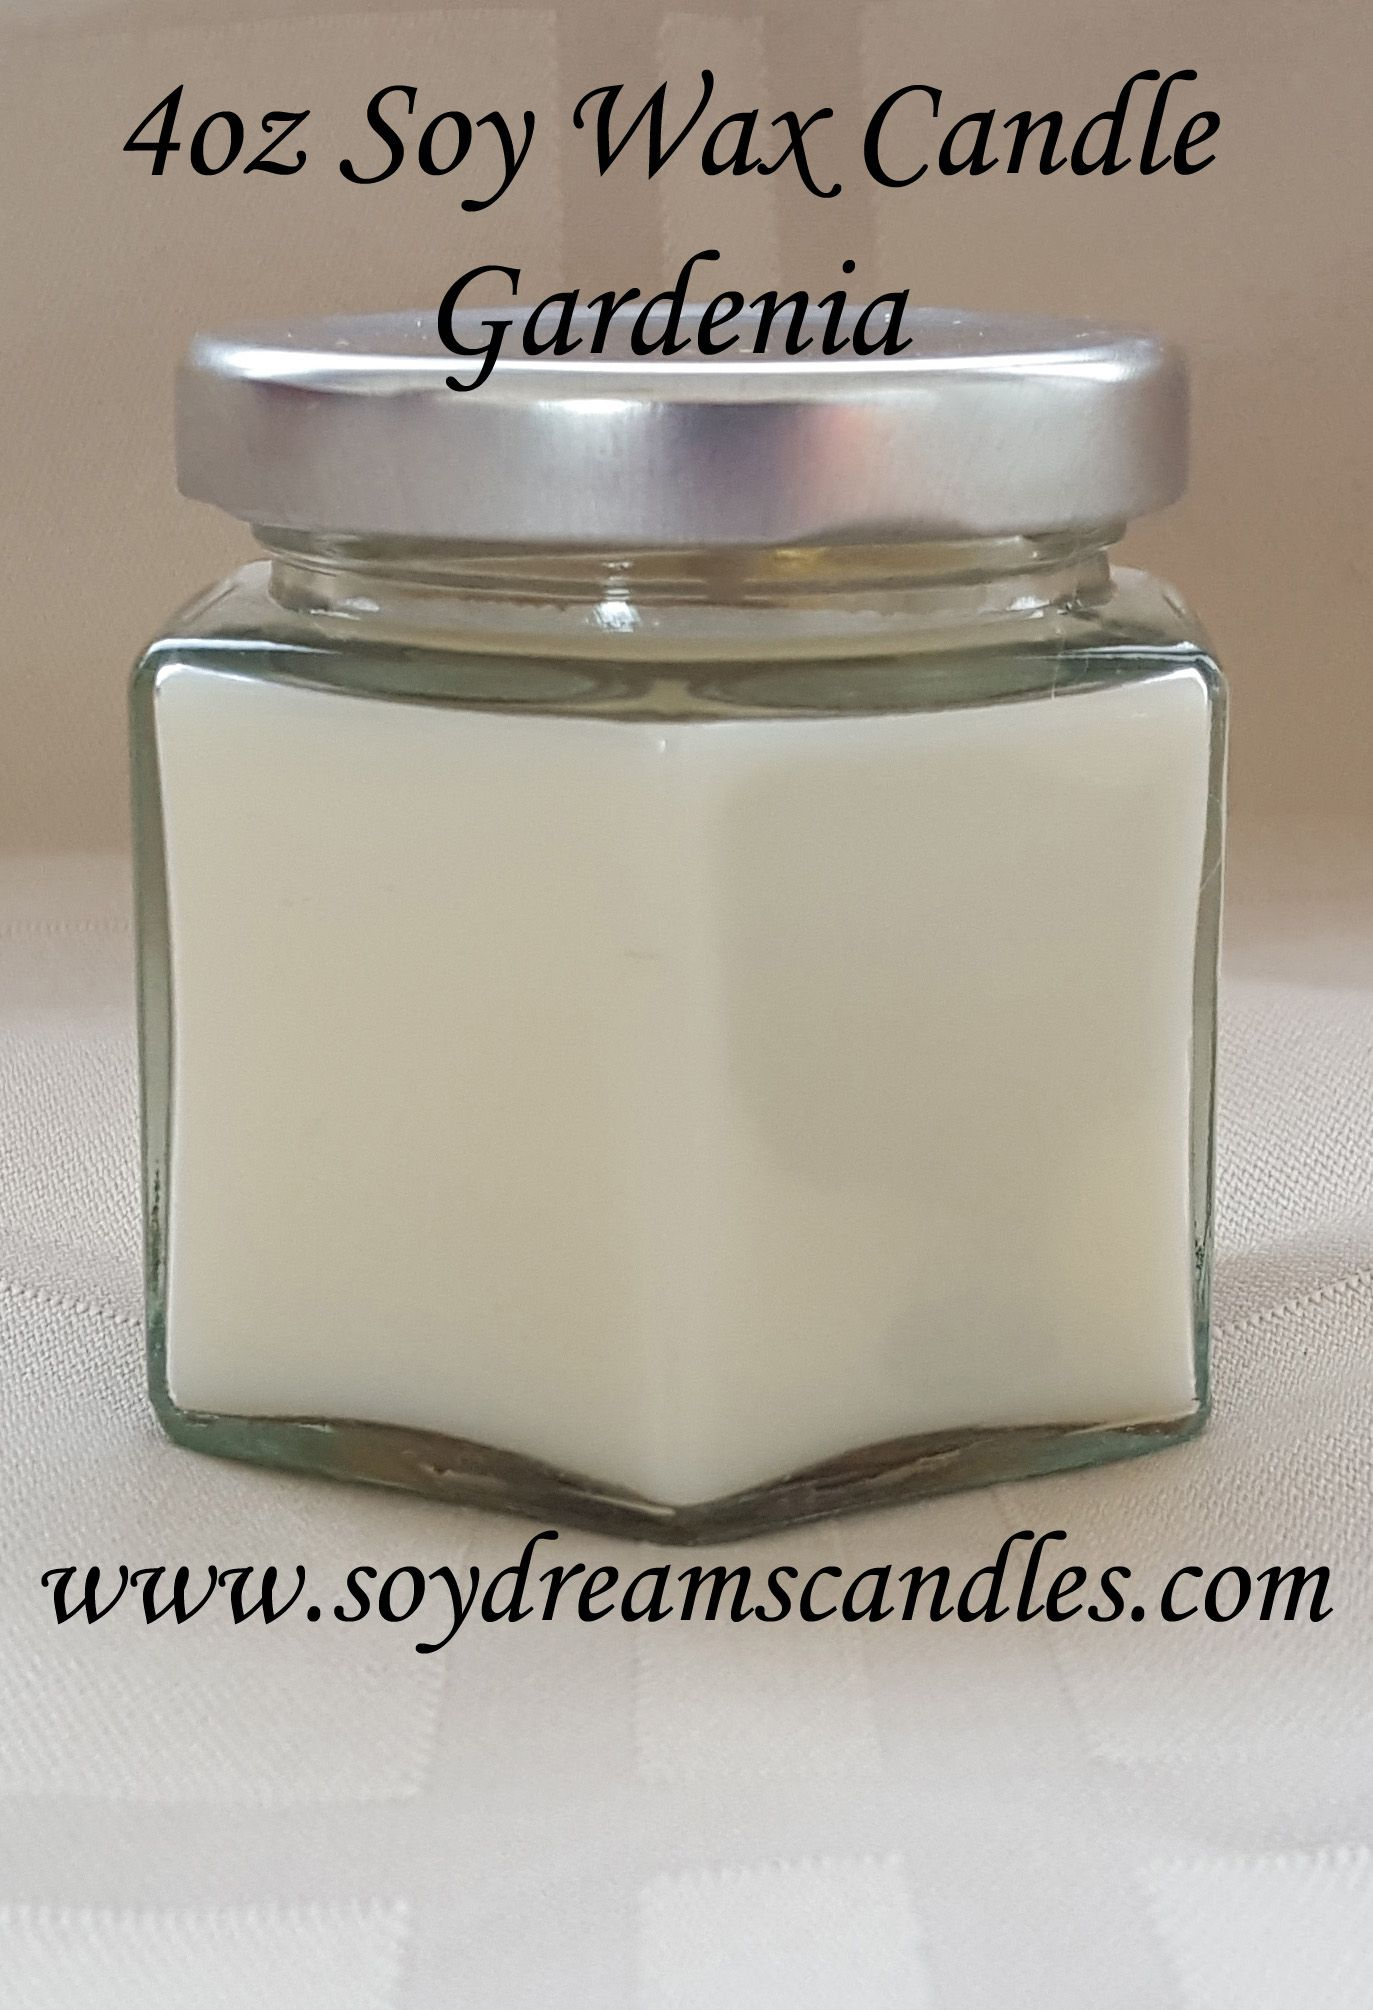 Gardenia Candle - 4oz Gift Size Soy Candle Jar - White Candle - Best ...